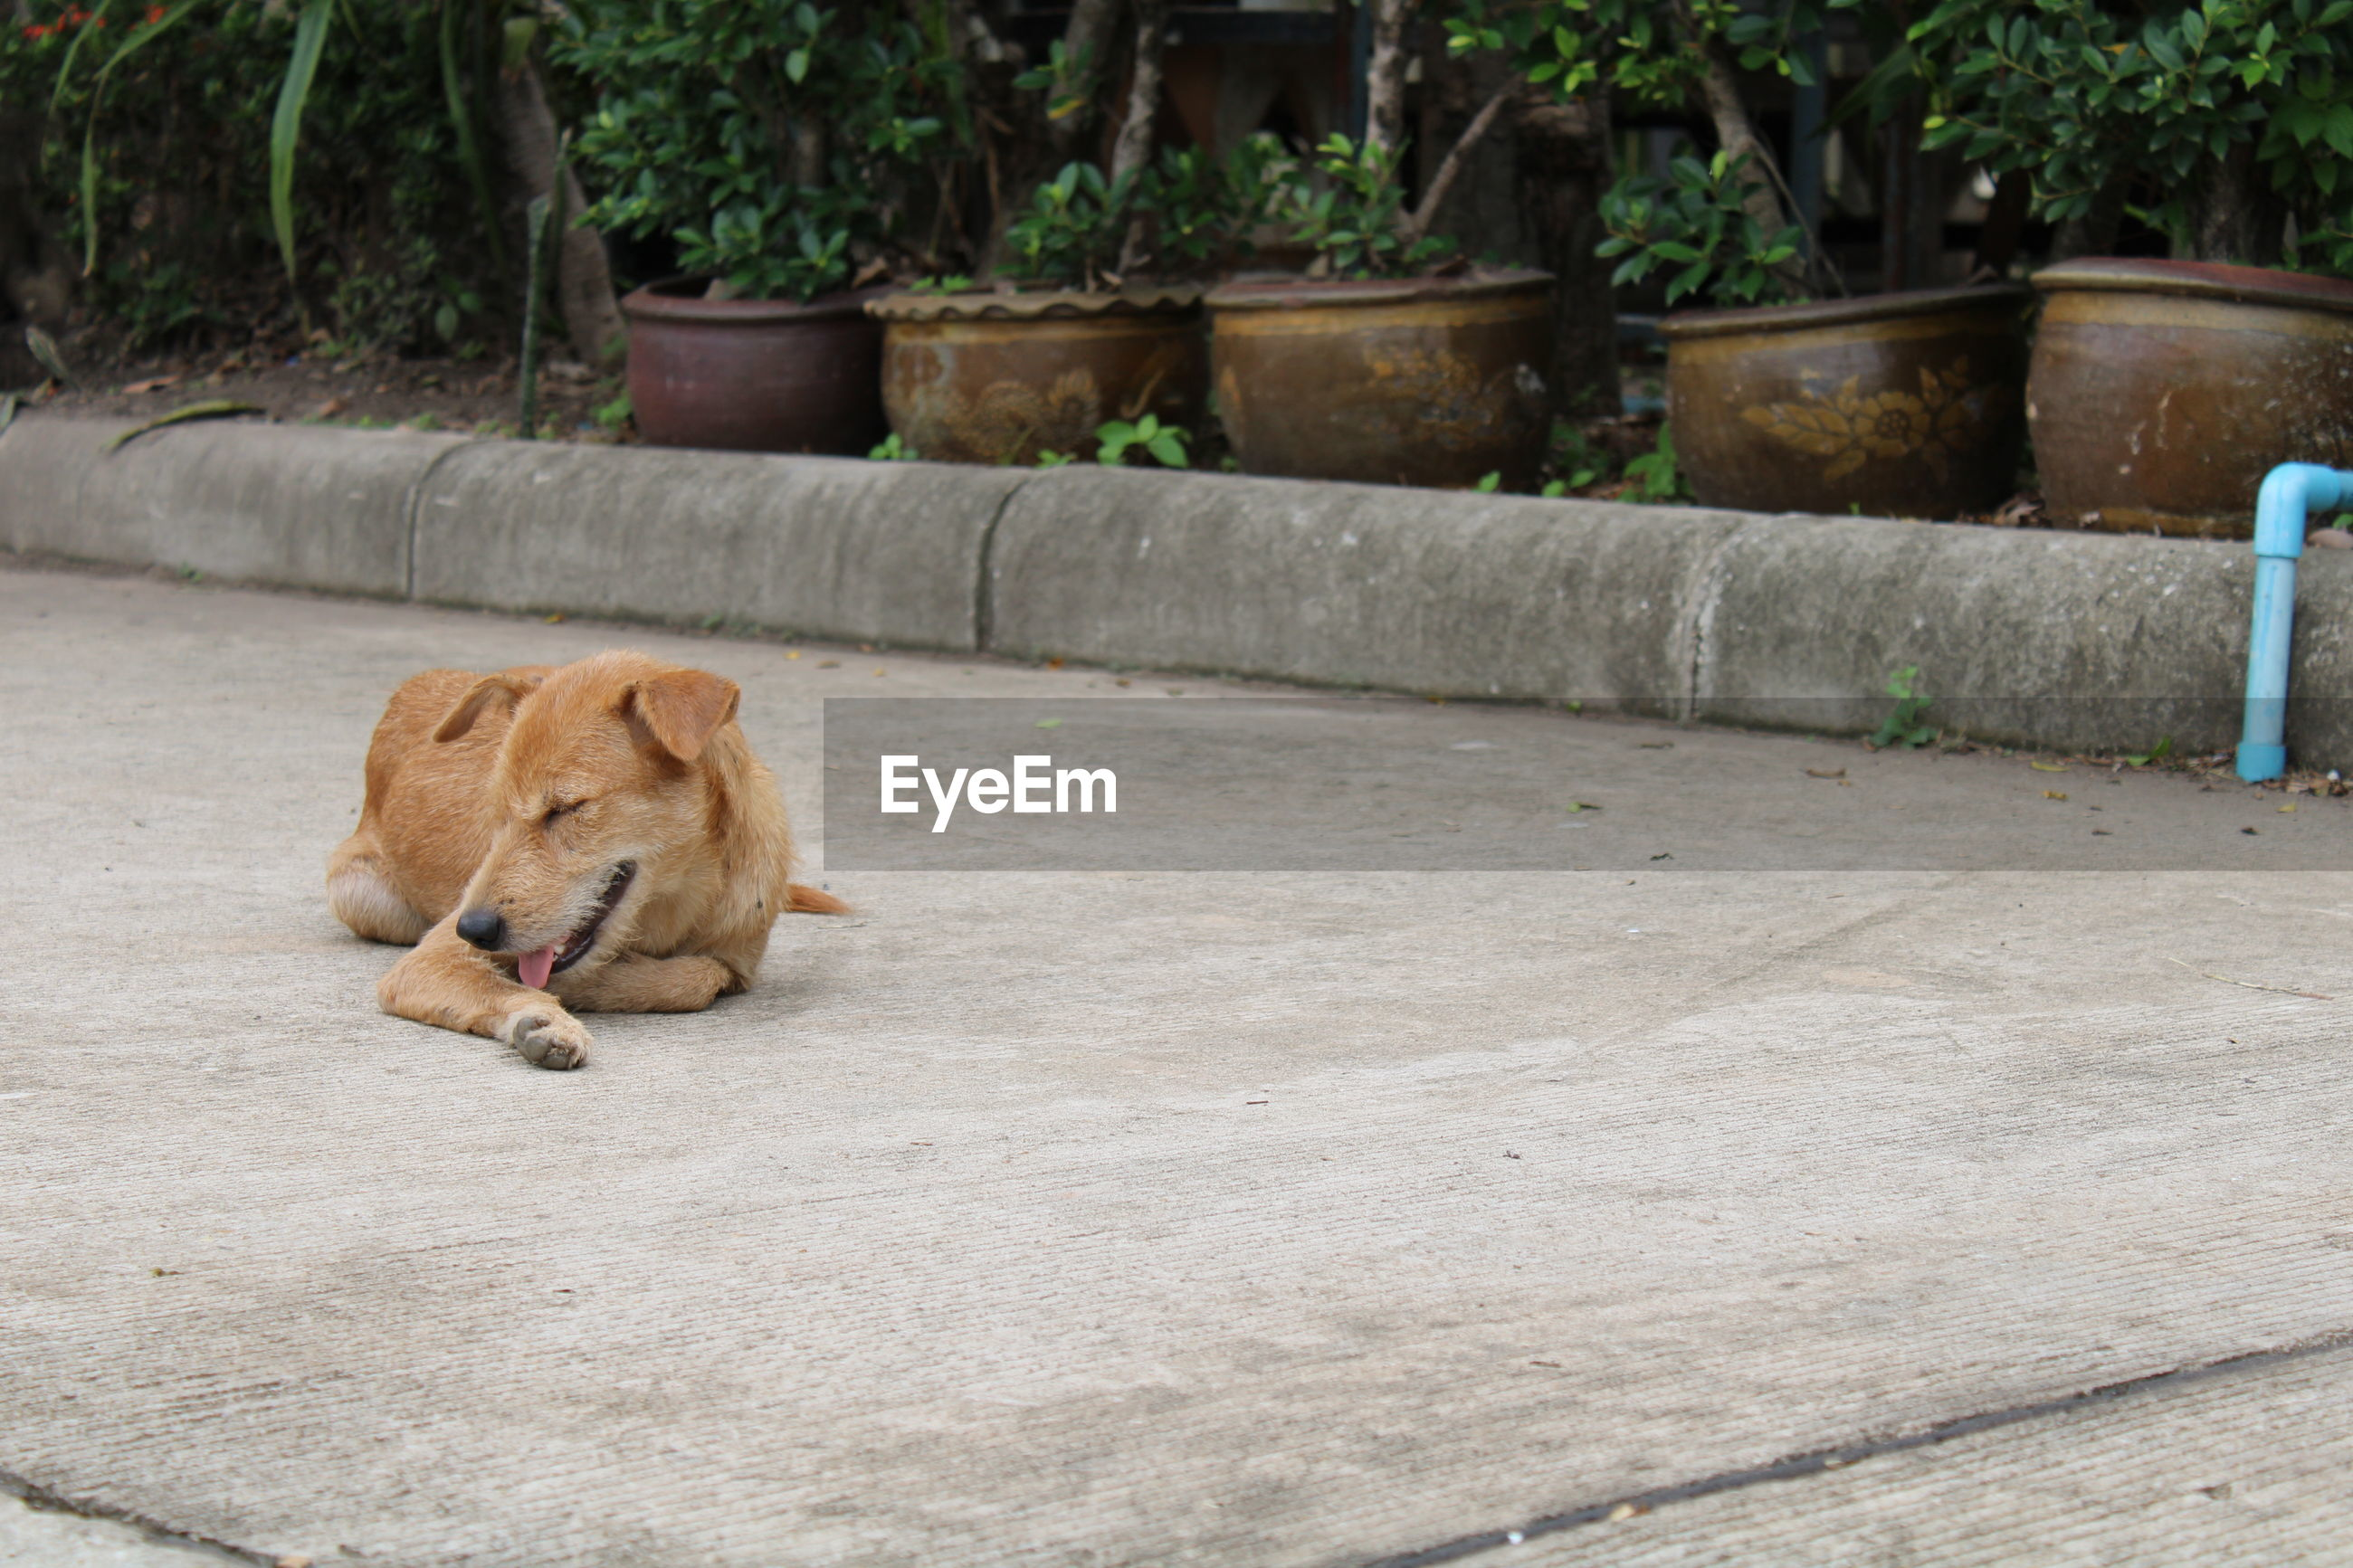 A dog lying on the road